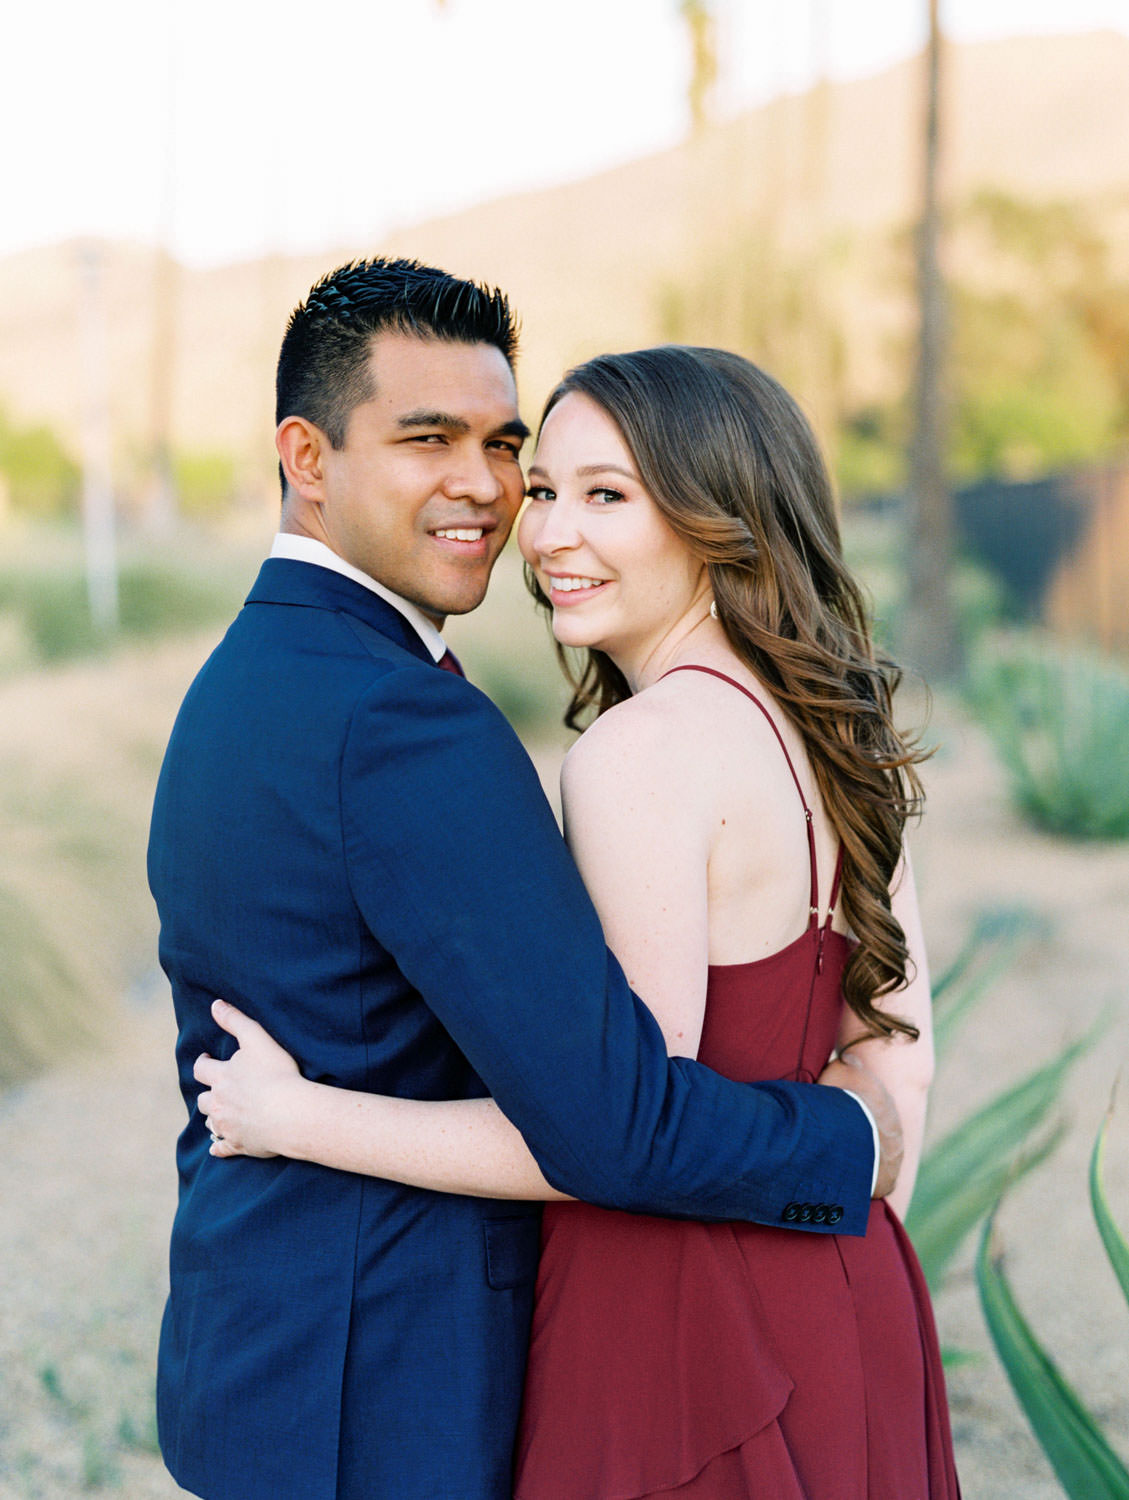 UC Riverside Engagement photos with the mountains in the background. Bride in long berry marsala dress and groom in navy suit. Film photographer Cavin Elizabeth Photography.